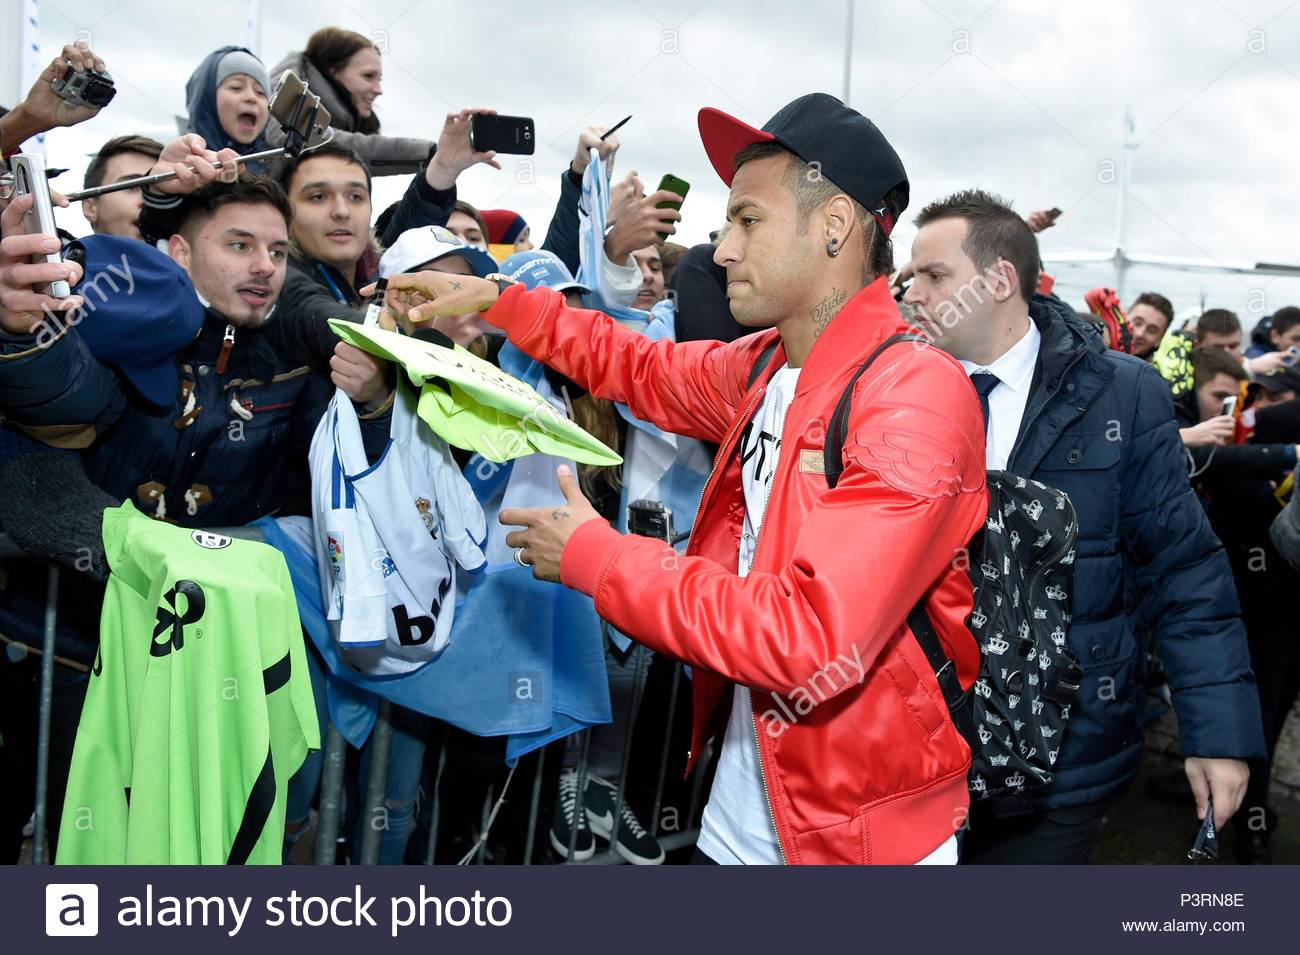 Neymar. 11JAN2016 Soccer stars arriving at Zurich airport for the FIFA Ballon d'Or Gala 2015 at the Kongresshalle in Zurich. - Stock Image